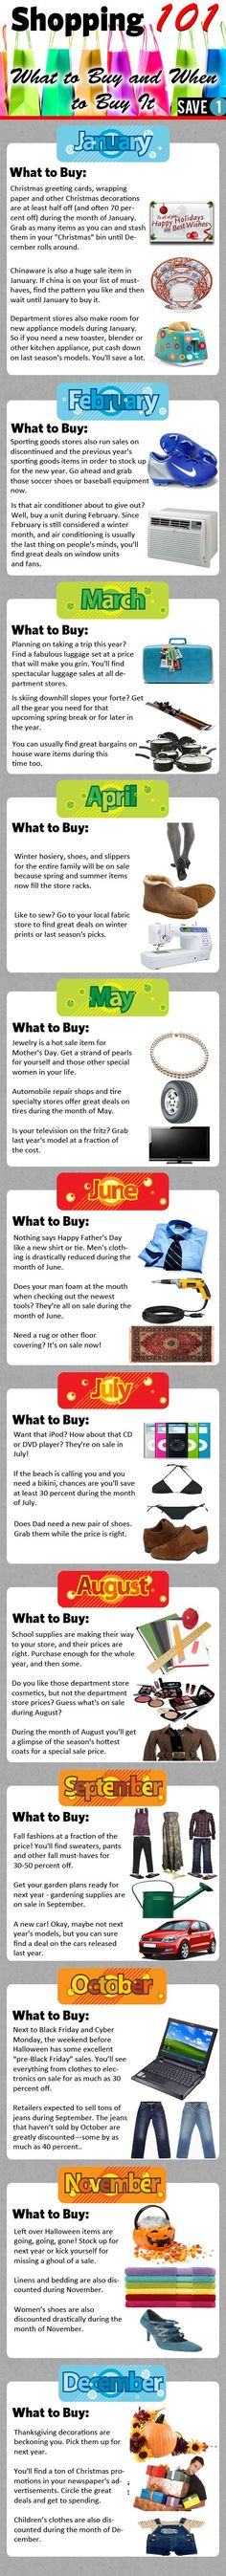 DIY Shopping 101 - What To Buy And When To Buy It